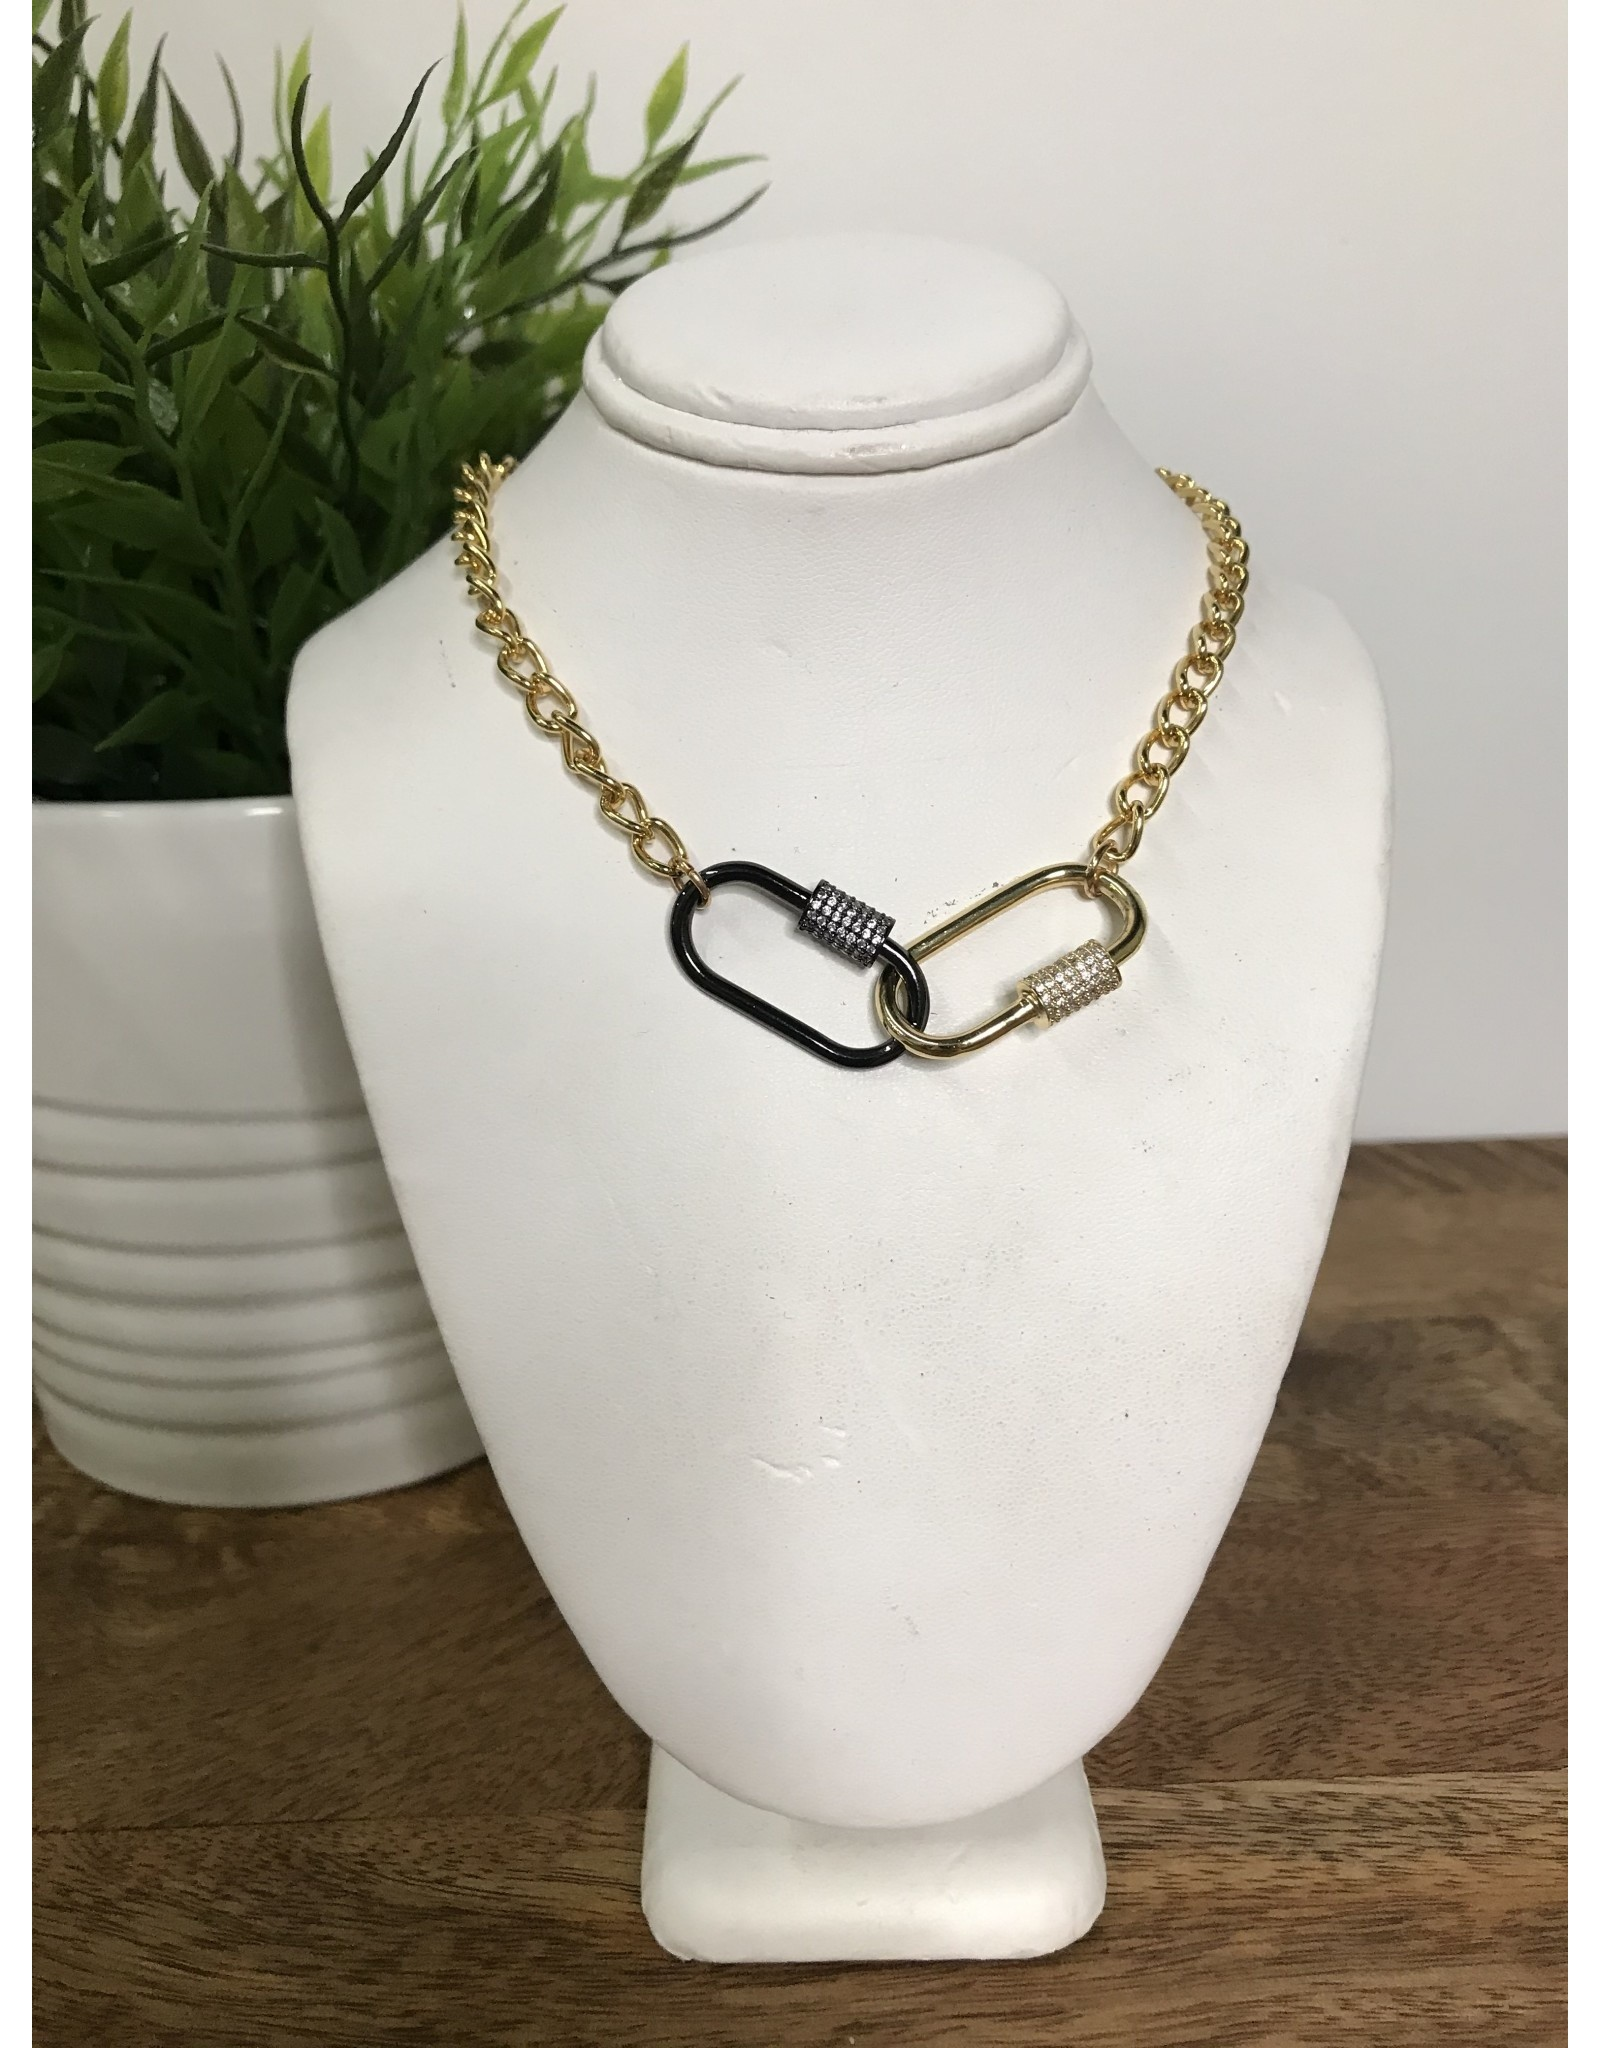 GEMELLI DOUBLE LOCK PAVE NECKLACE